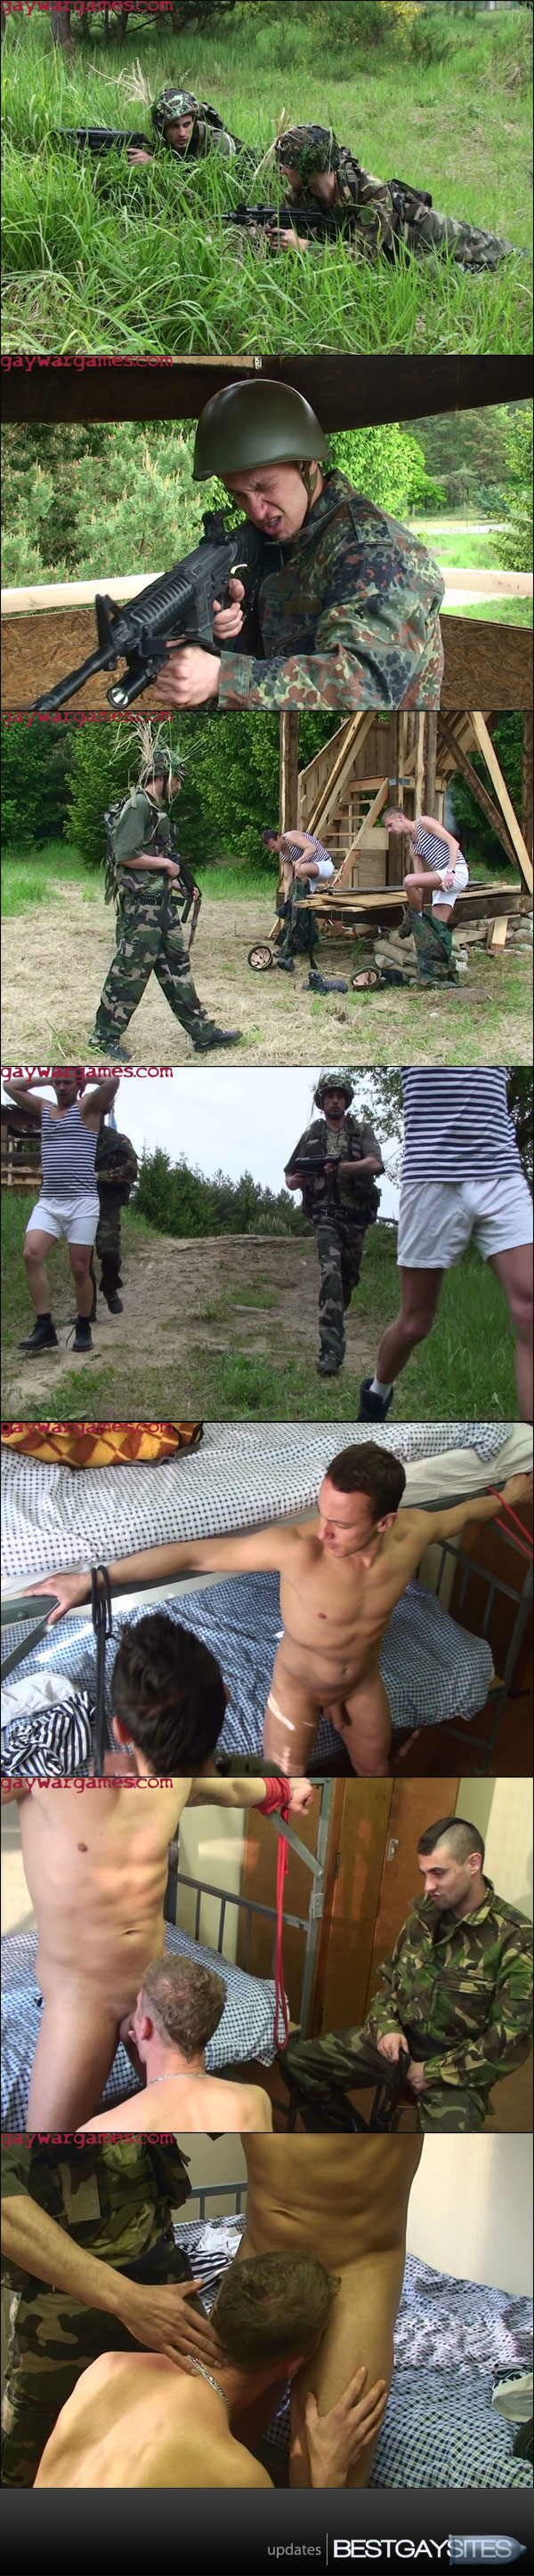 Gay War Games - Kalinka, Scene 1